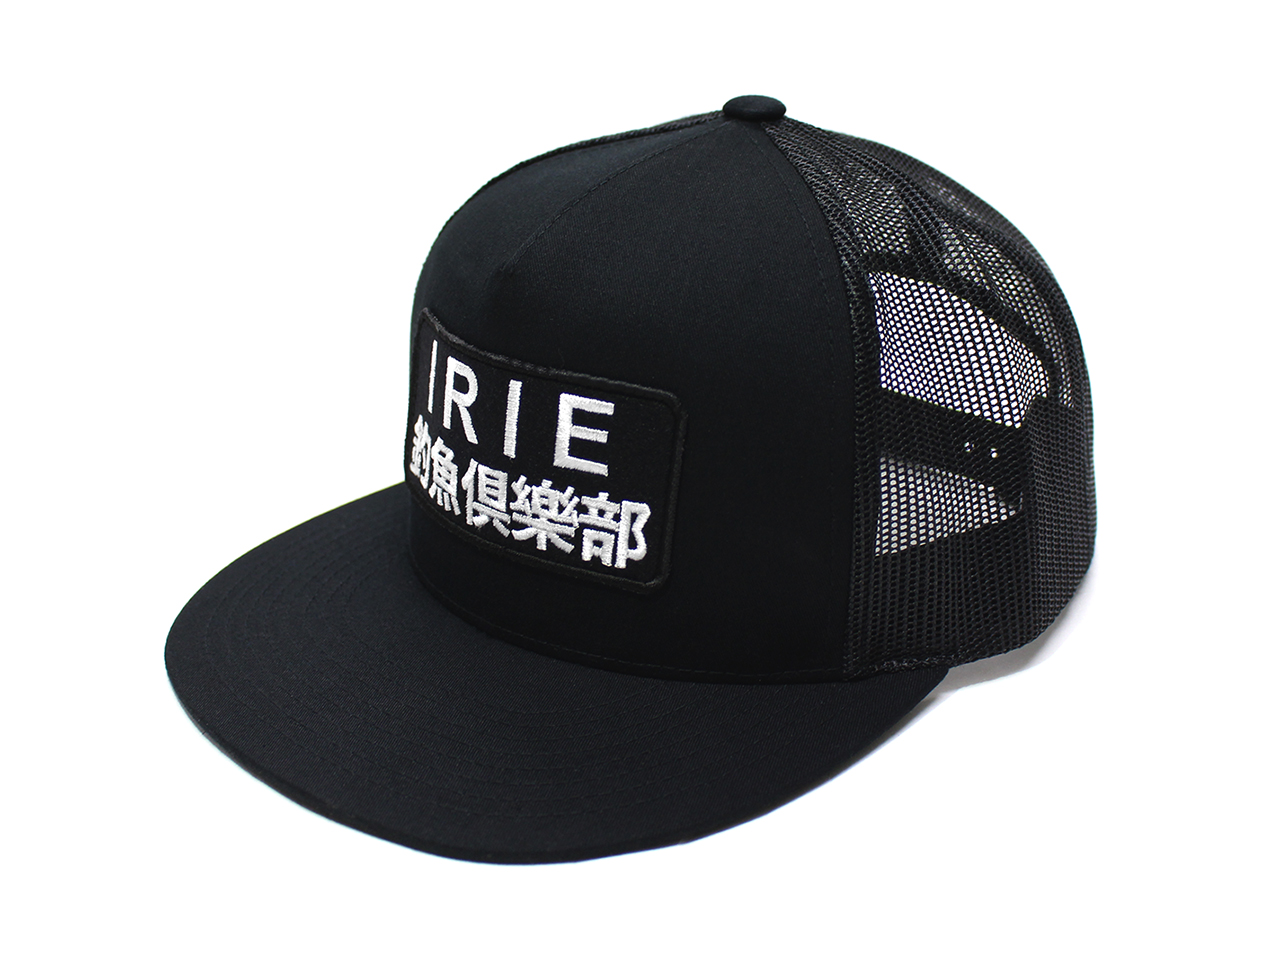 IRIE 釣魚倶楽部 MESH CAP - IRIE FISHING CLUB